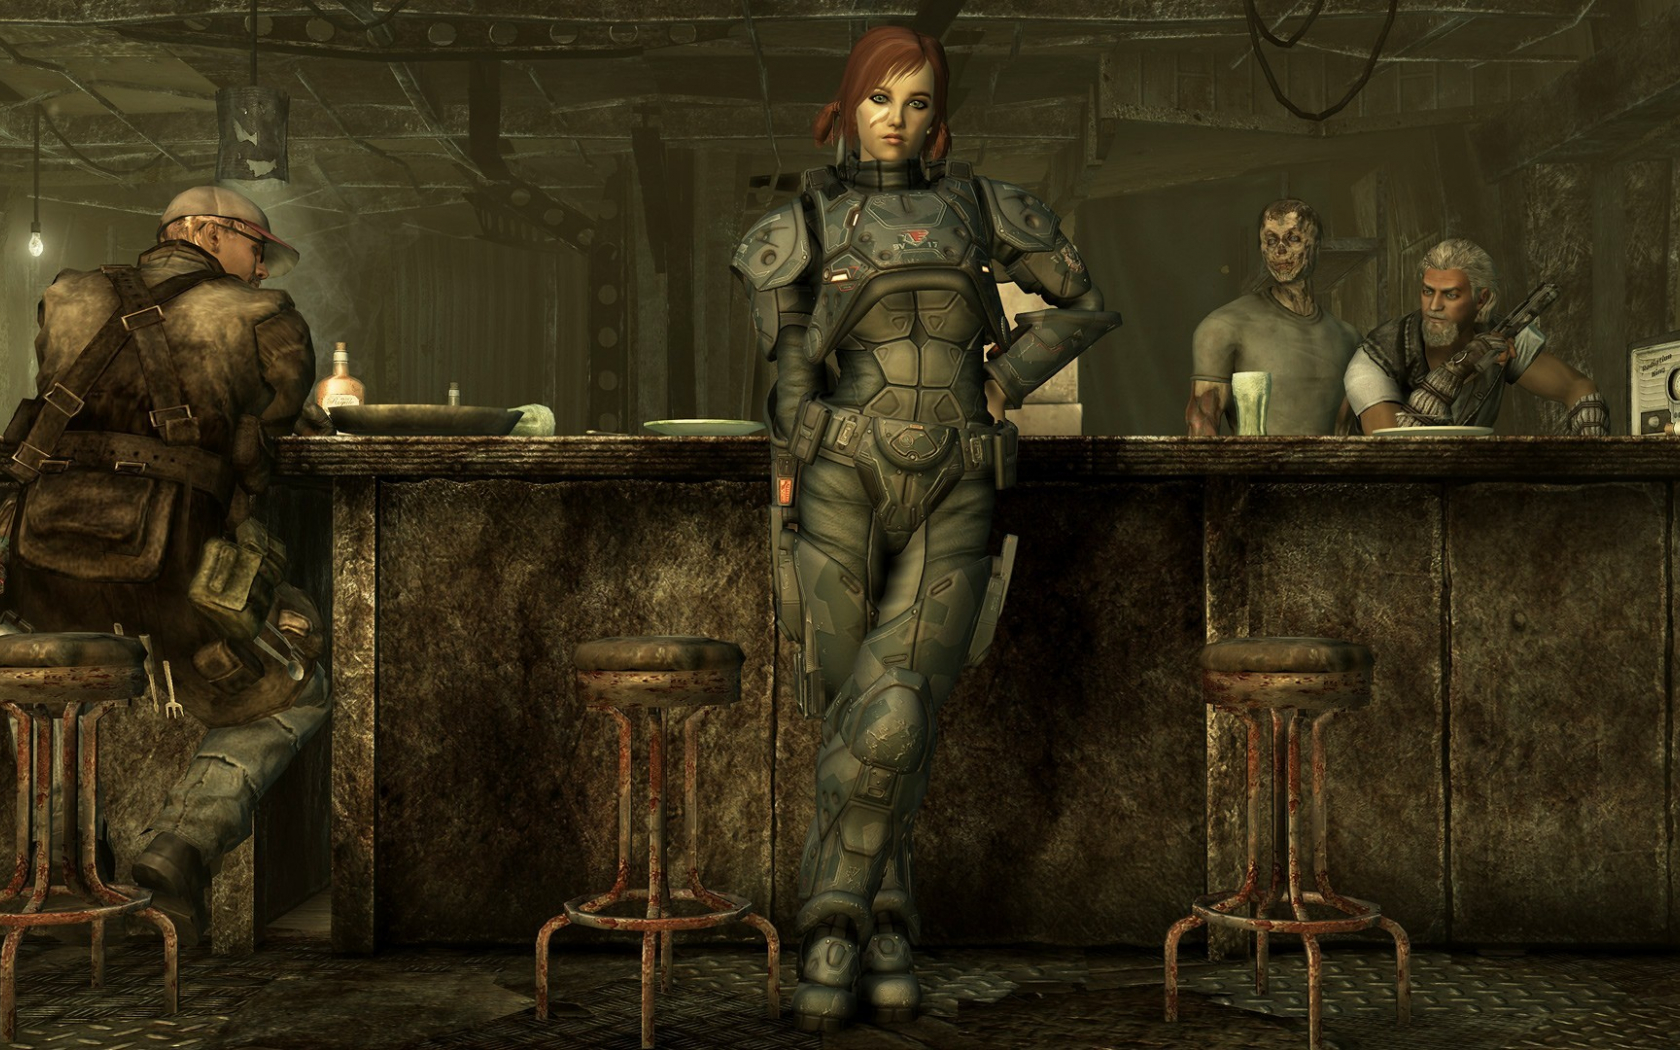 Free Download Fallout Wallpaper Please Stand By Fallout New Vegas